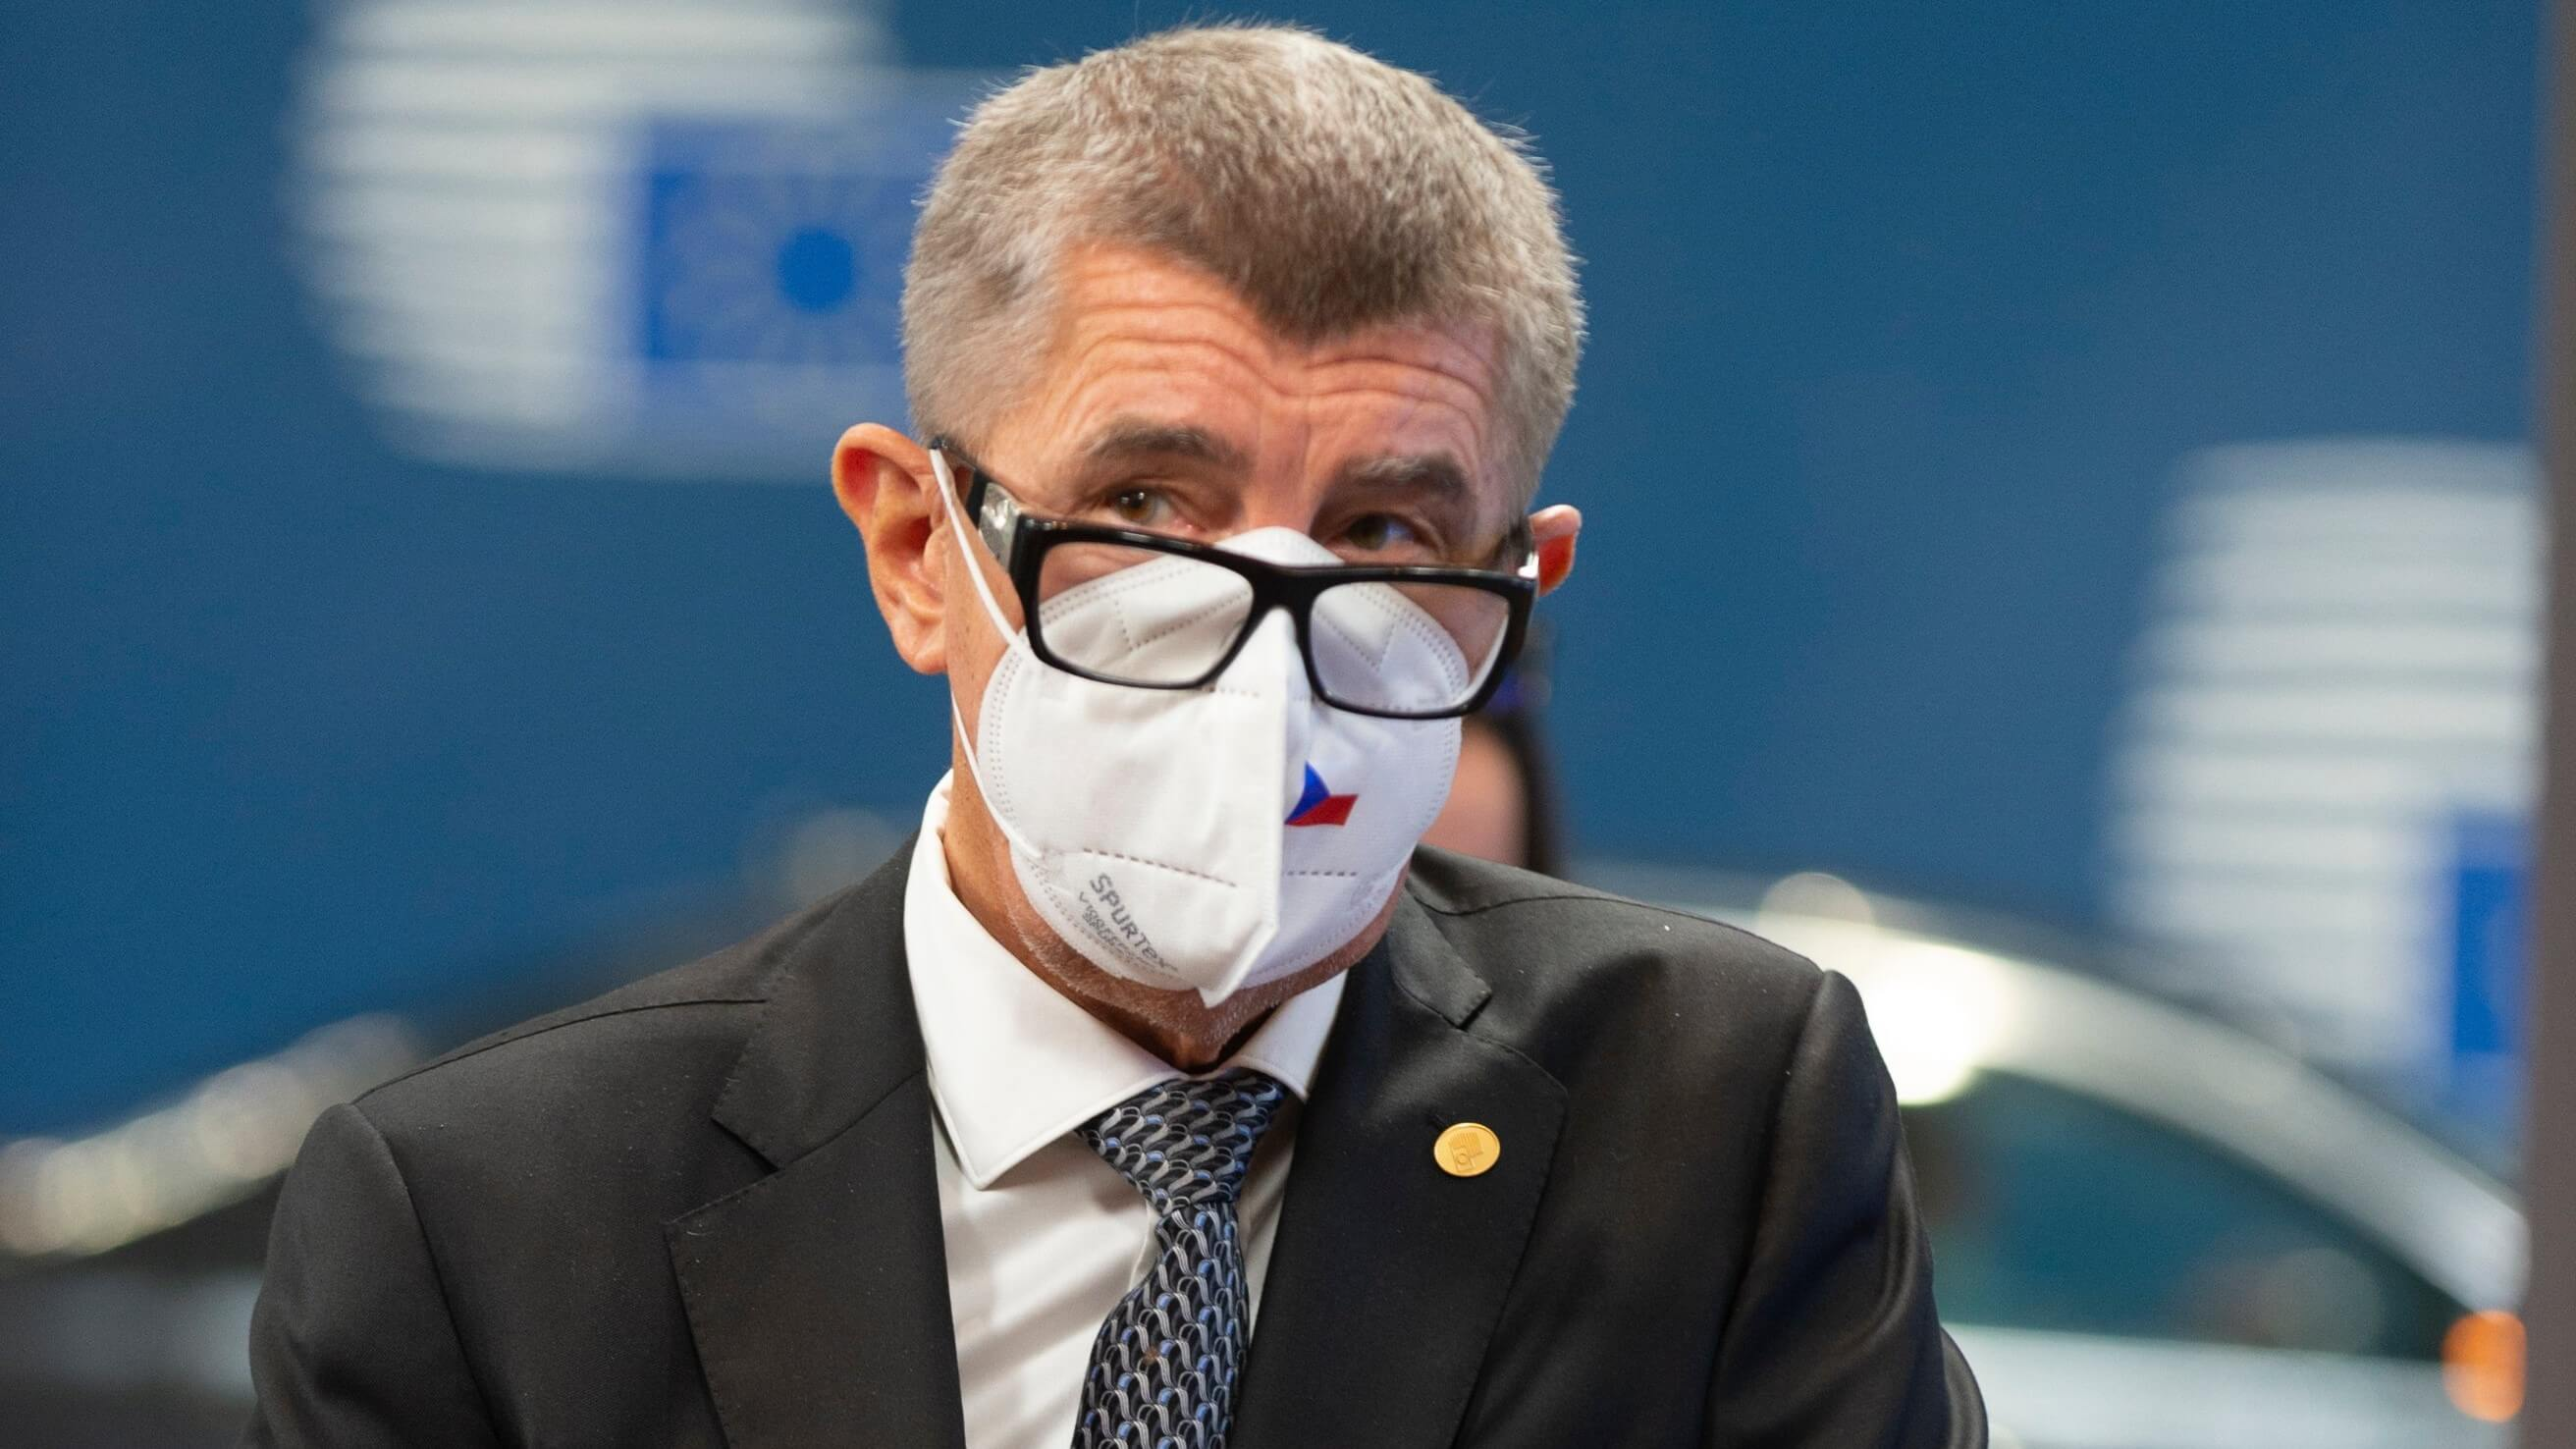 andrej-babis-state-of-emergency